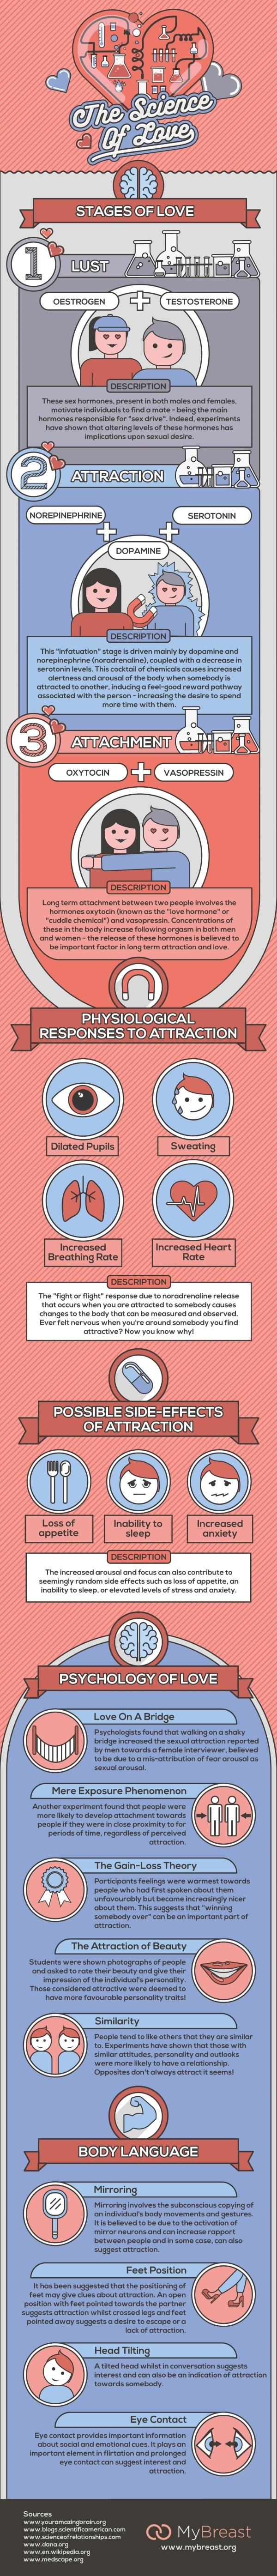 love graphics image with love scientific statements